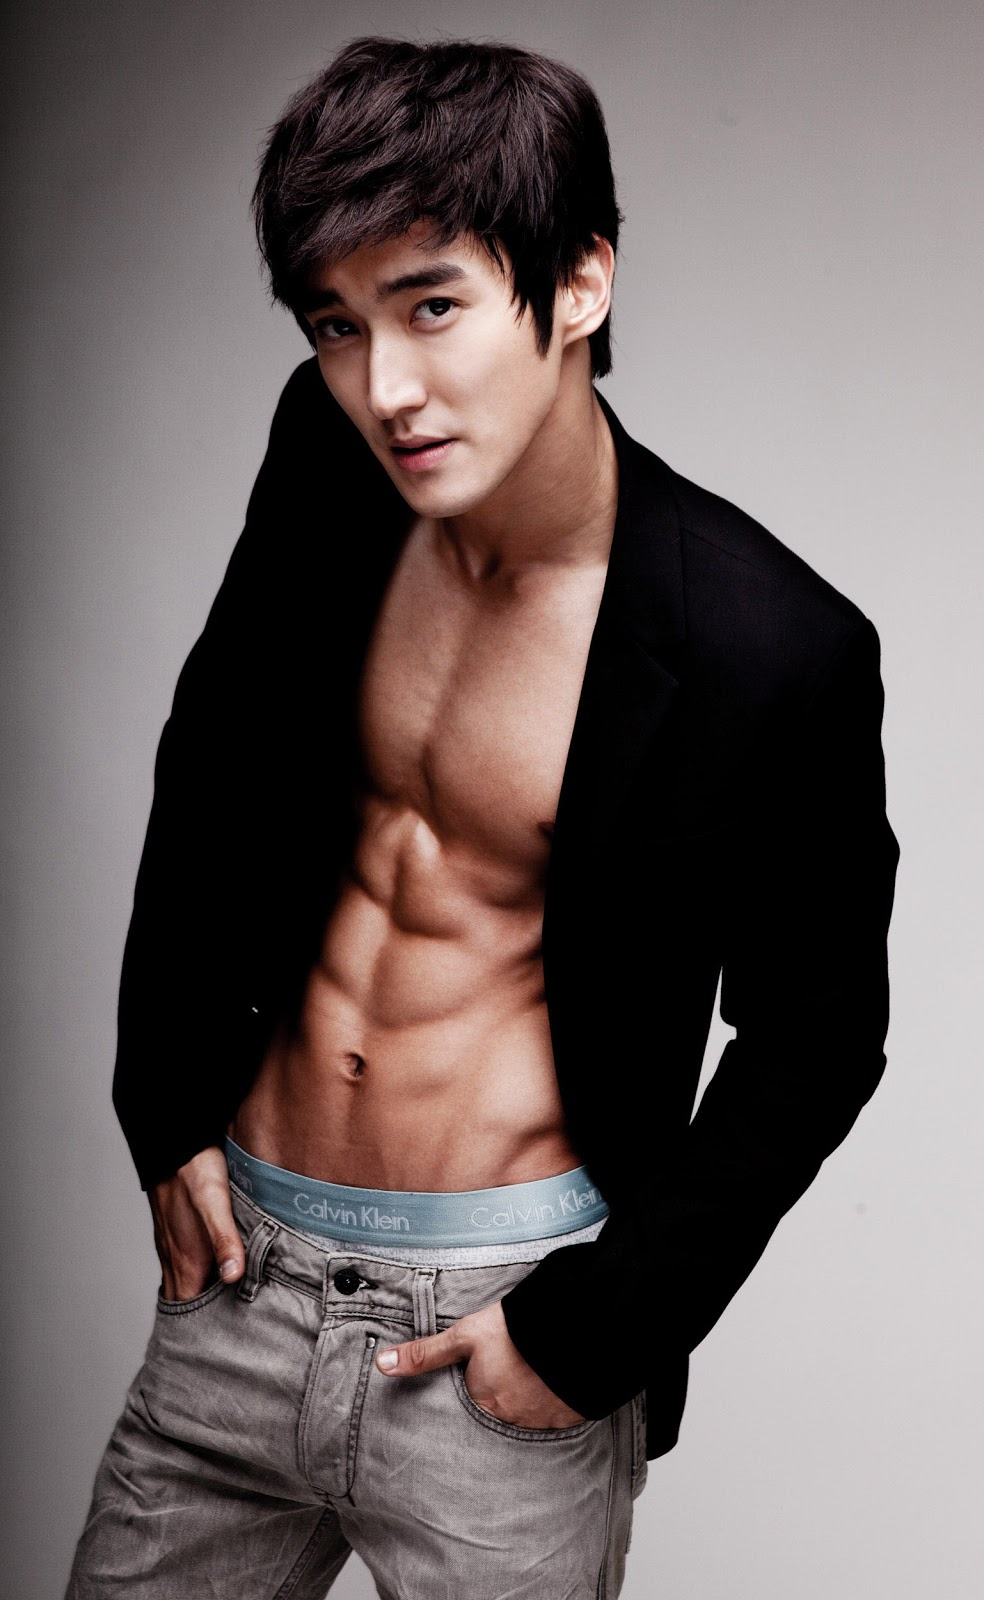 Siwon Athletic Body39;s Wallpaper  Take Wallpaper